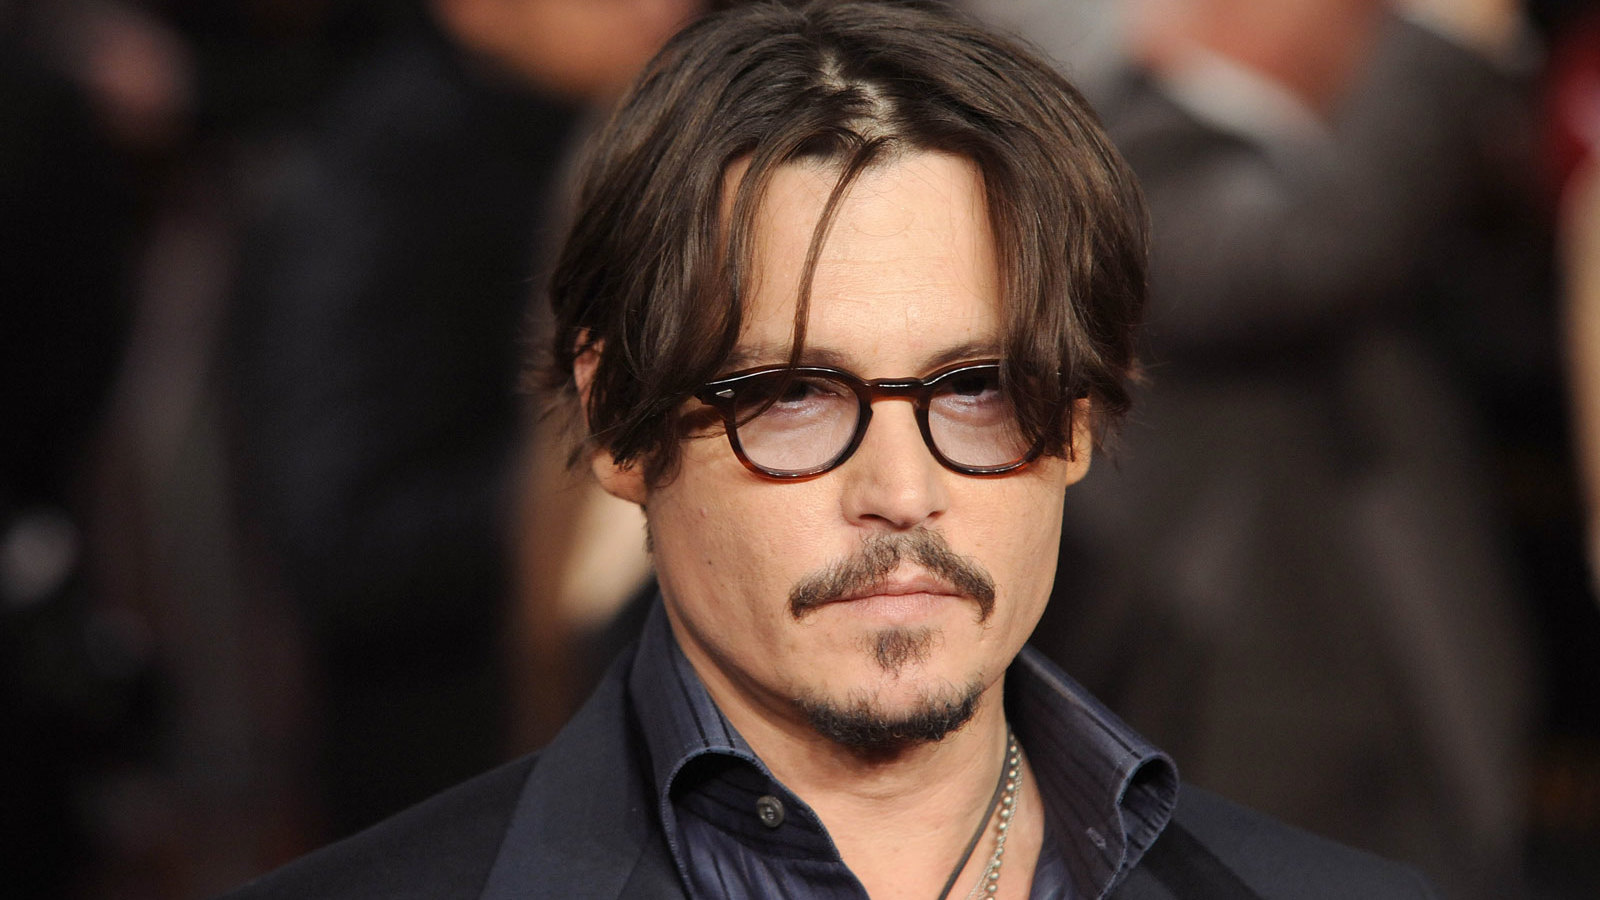 POLL: De films met Johnny Depp